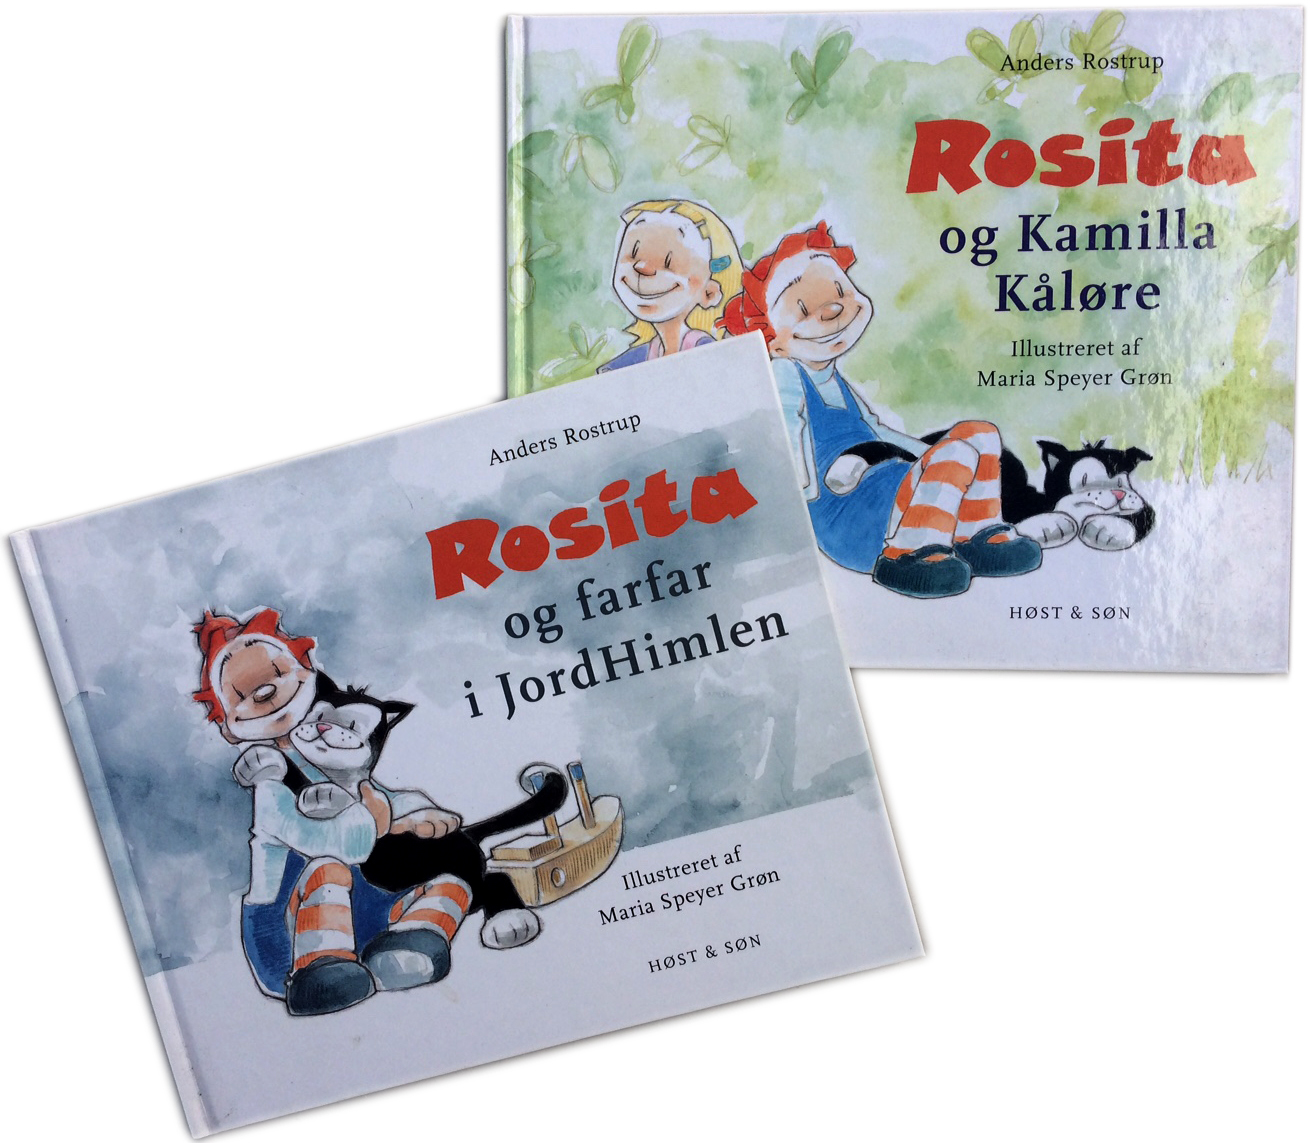 The Rosita books